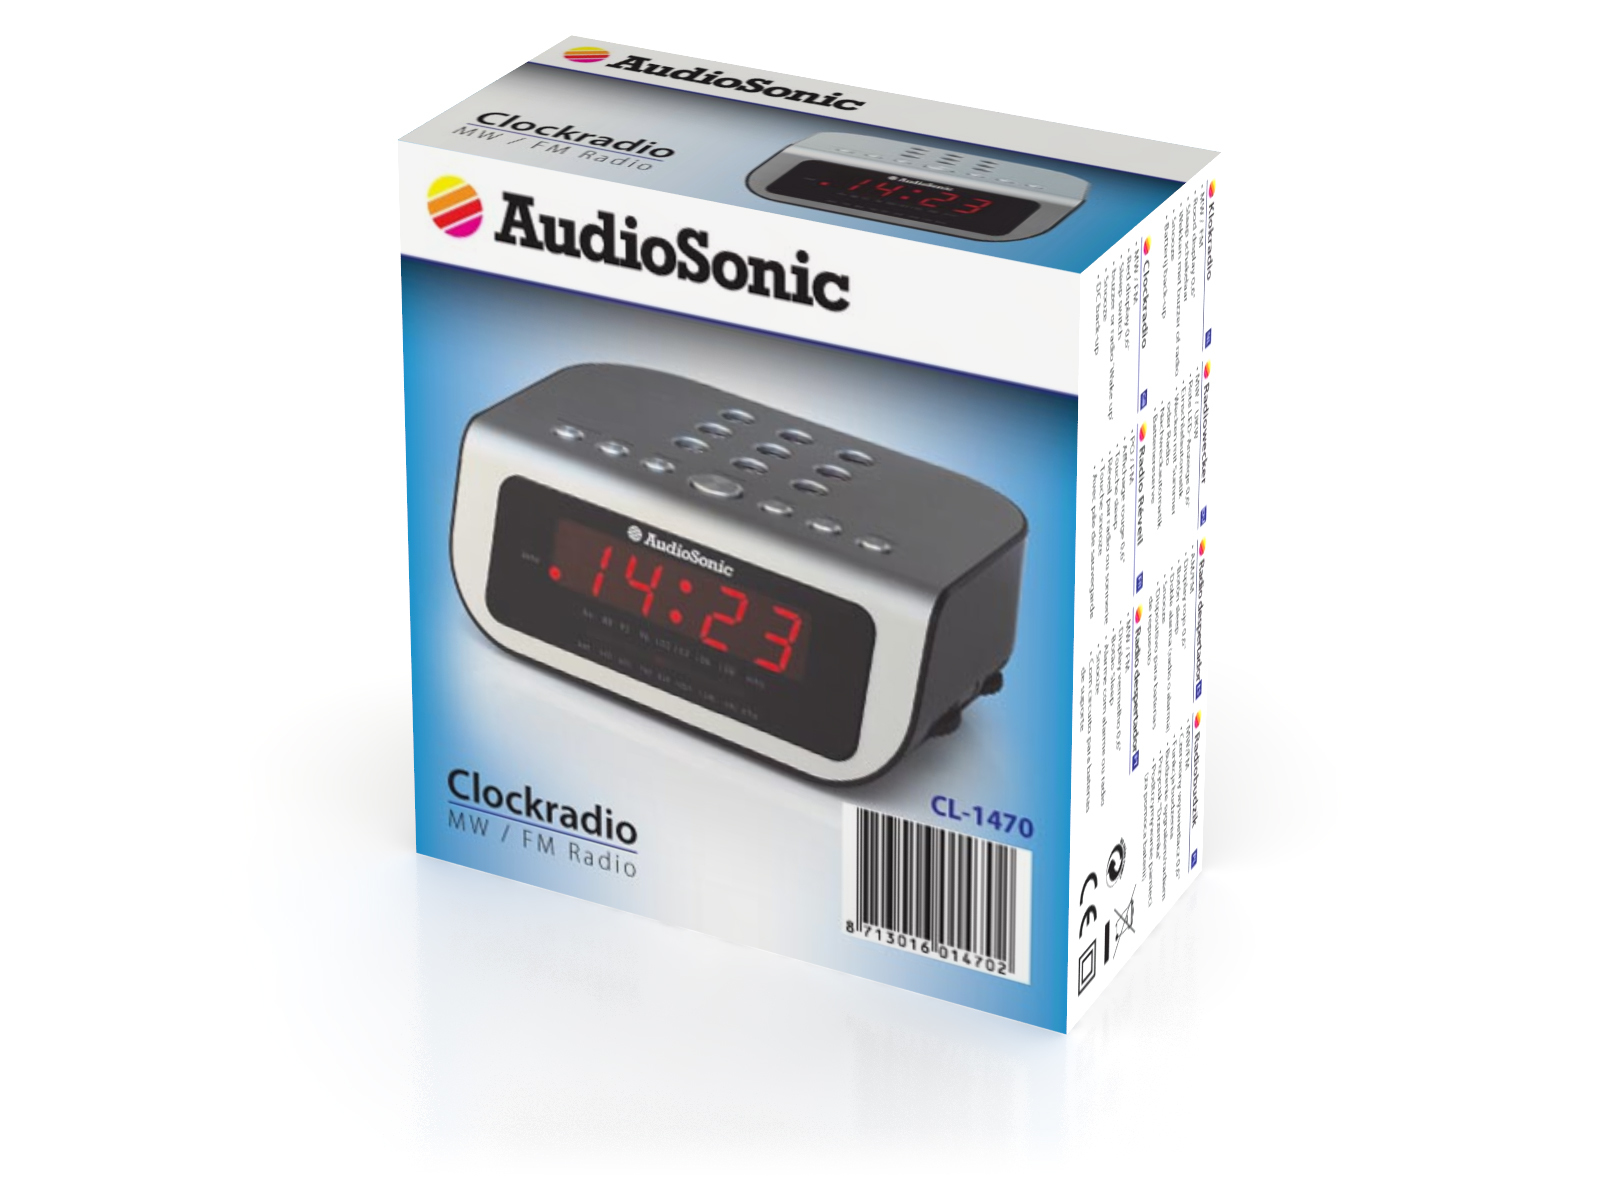 AudioSonic CL-1470 Orologio Argento radio